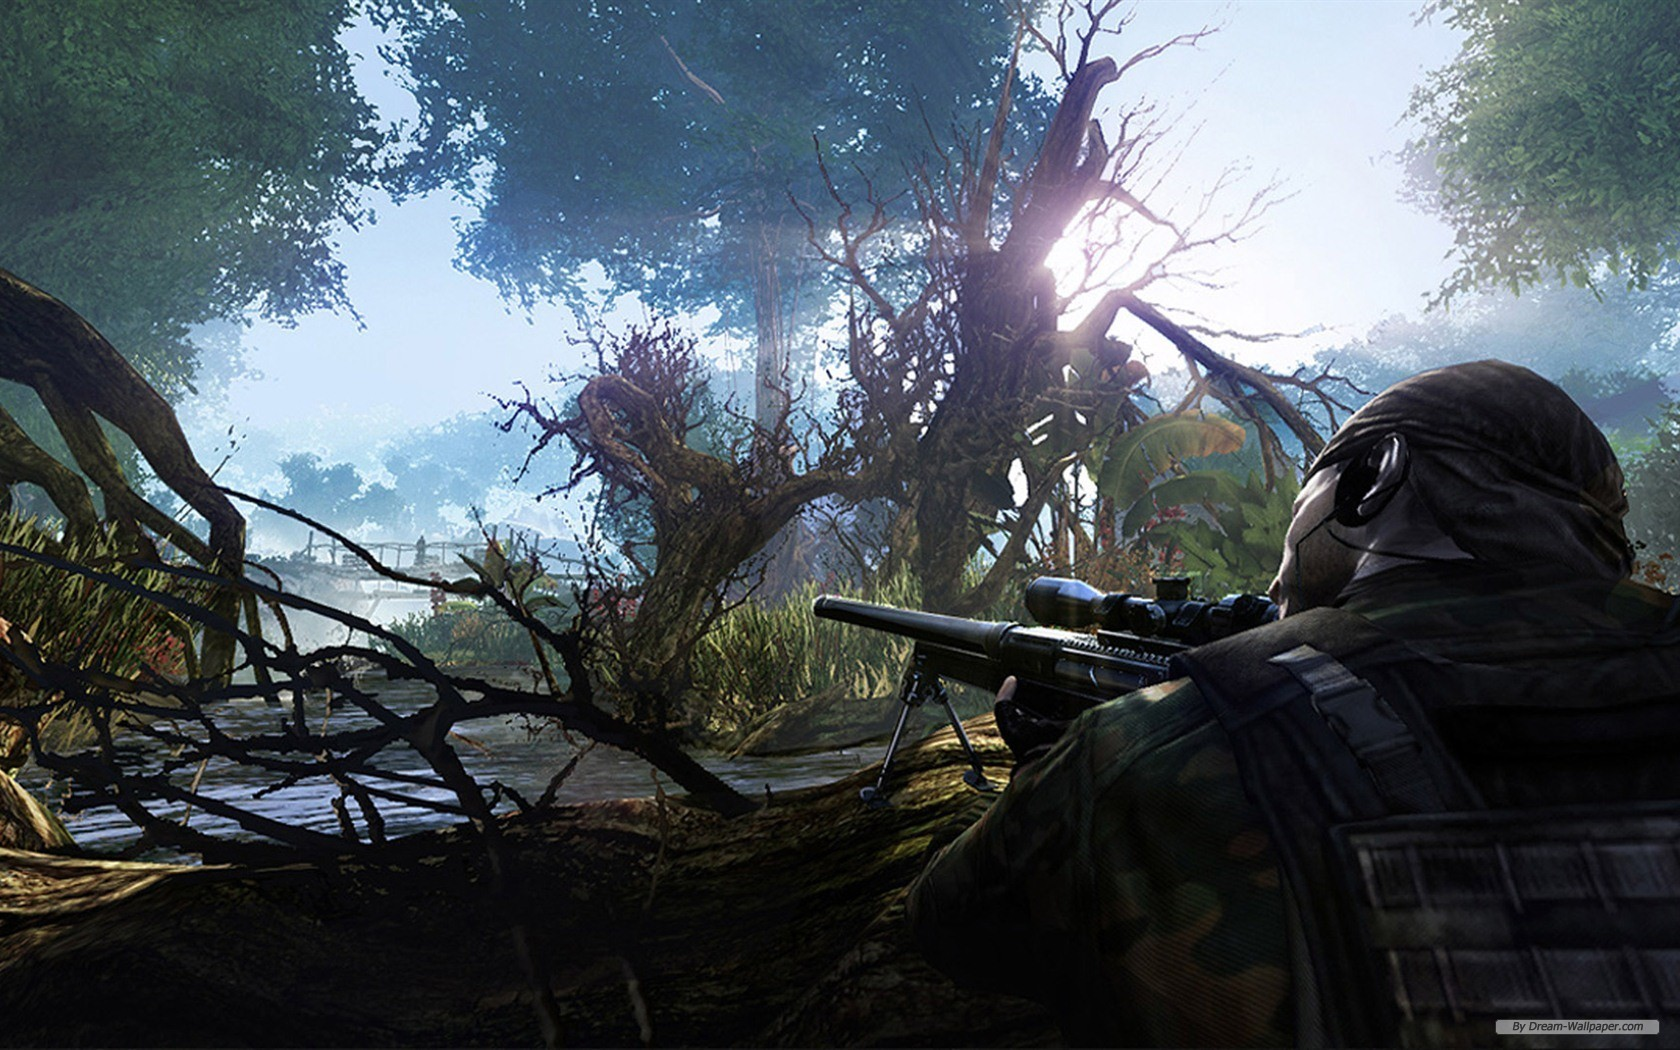 Wallpaper   Game wallpaper   Sniper Ghost Warrior 2 1680x1050